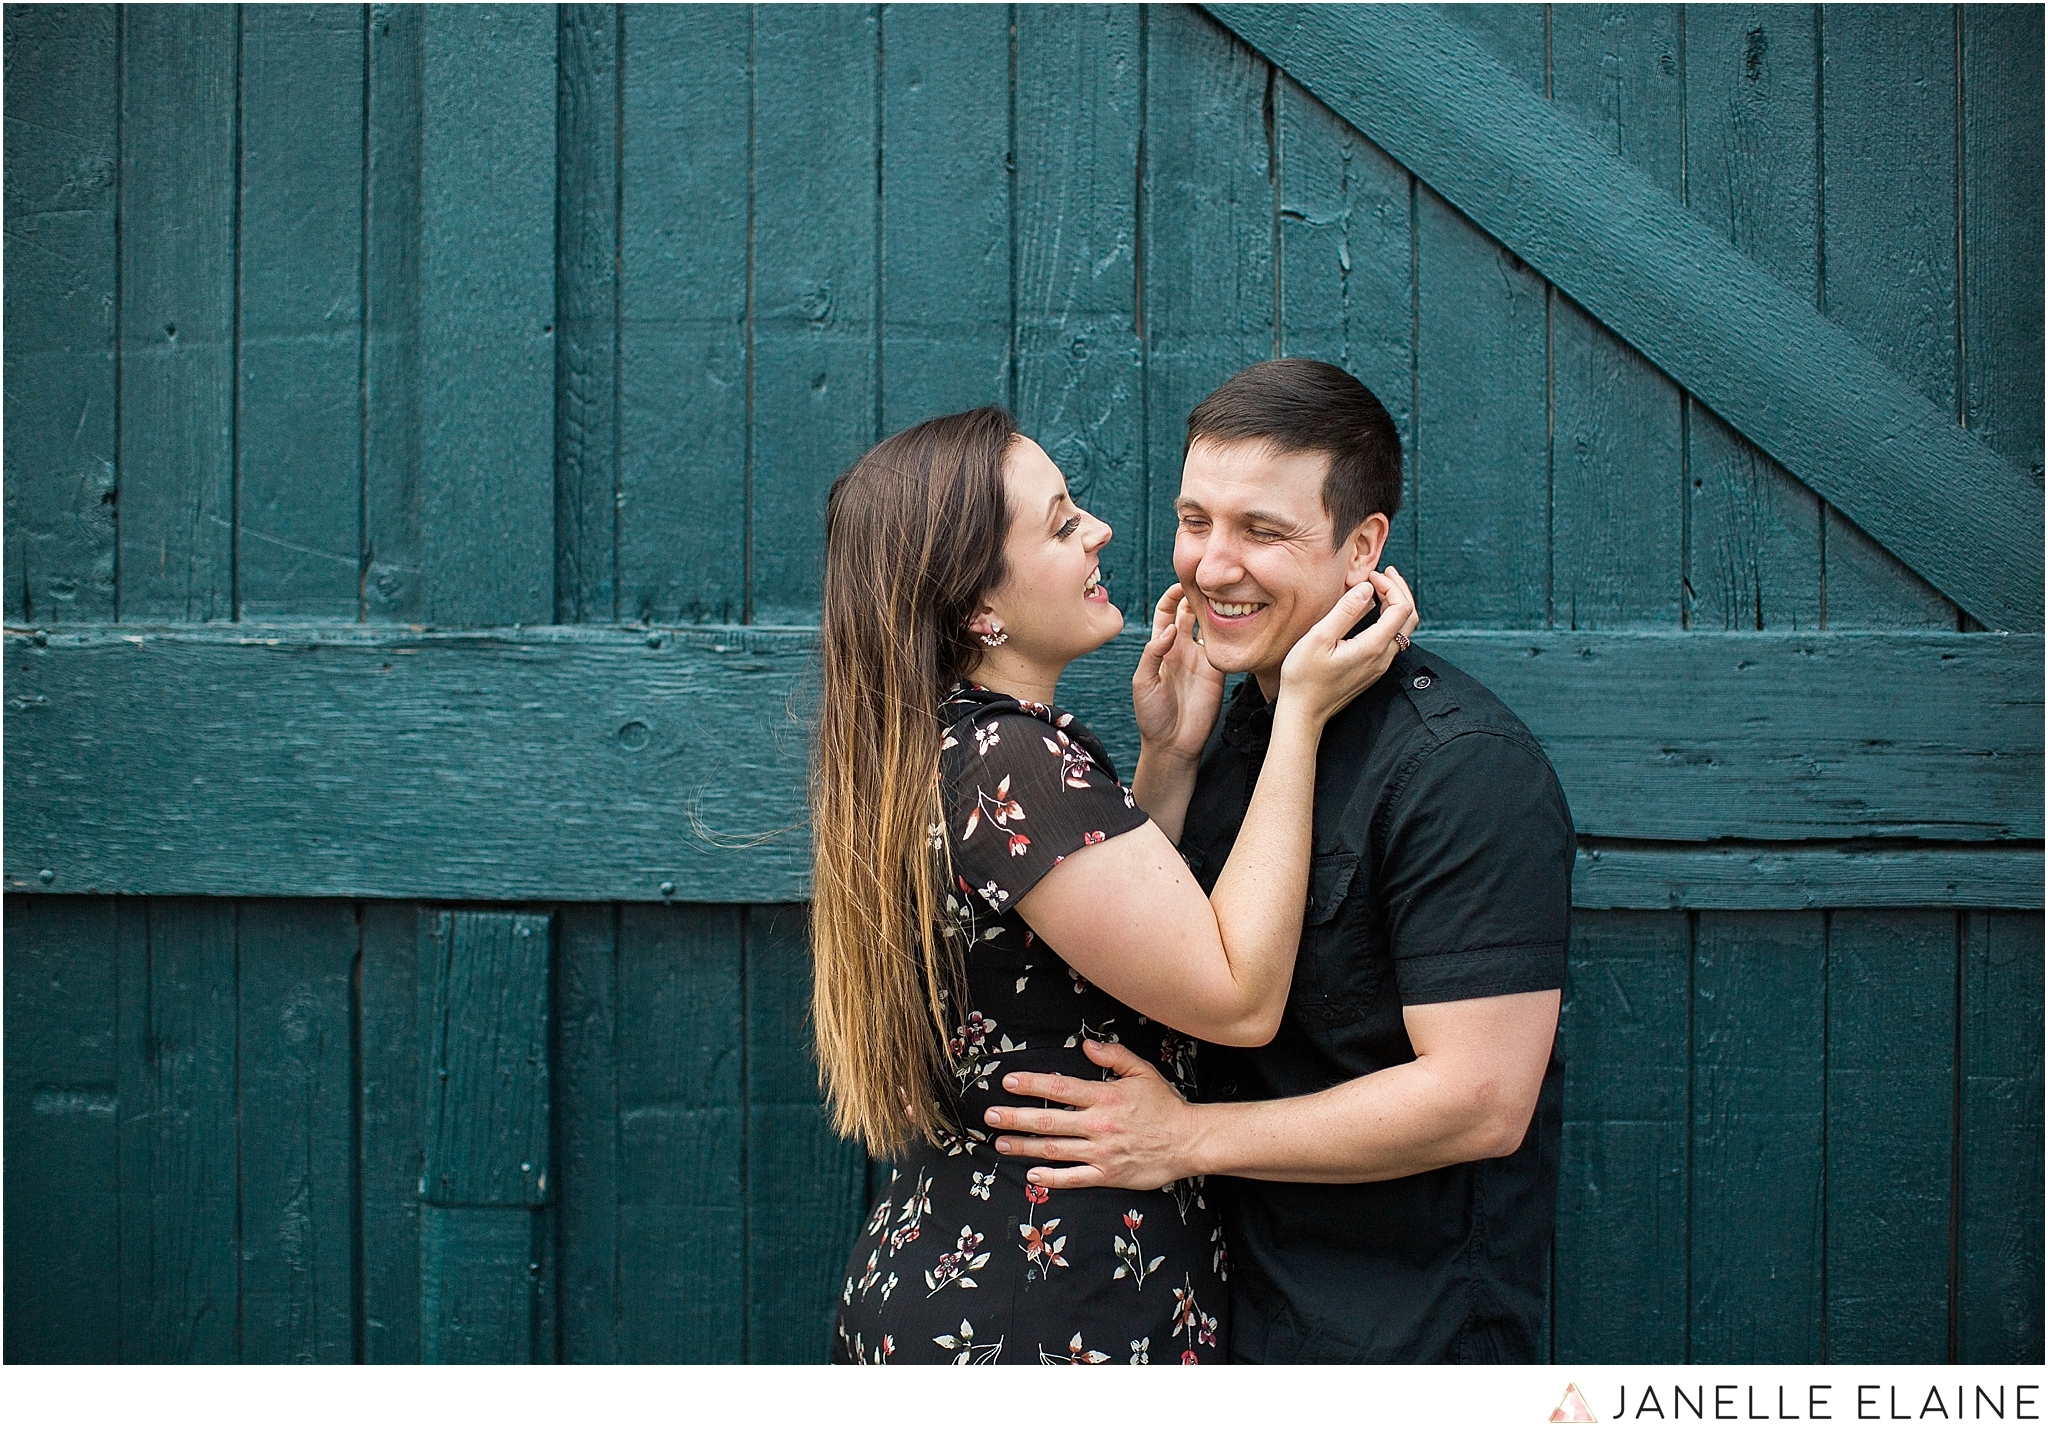 karen ethan-georgetown engagement photos-seattle-janelle elaine photography-74.jpg